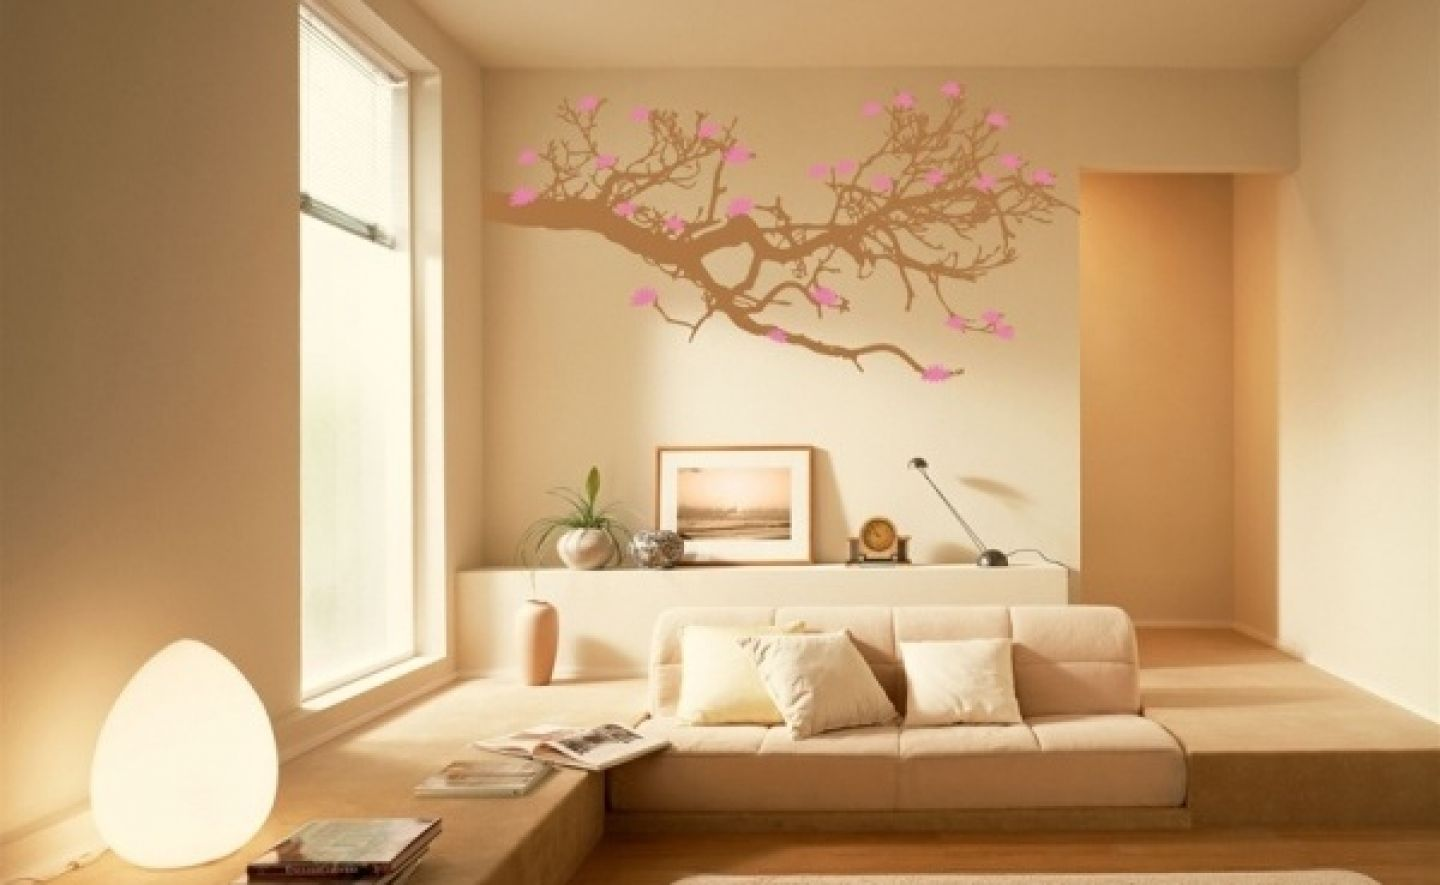 best images about wall painting idea on pinterest pink wall home design paint - Interior Paint Design Ideas